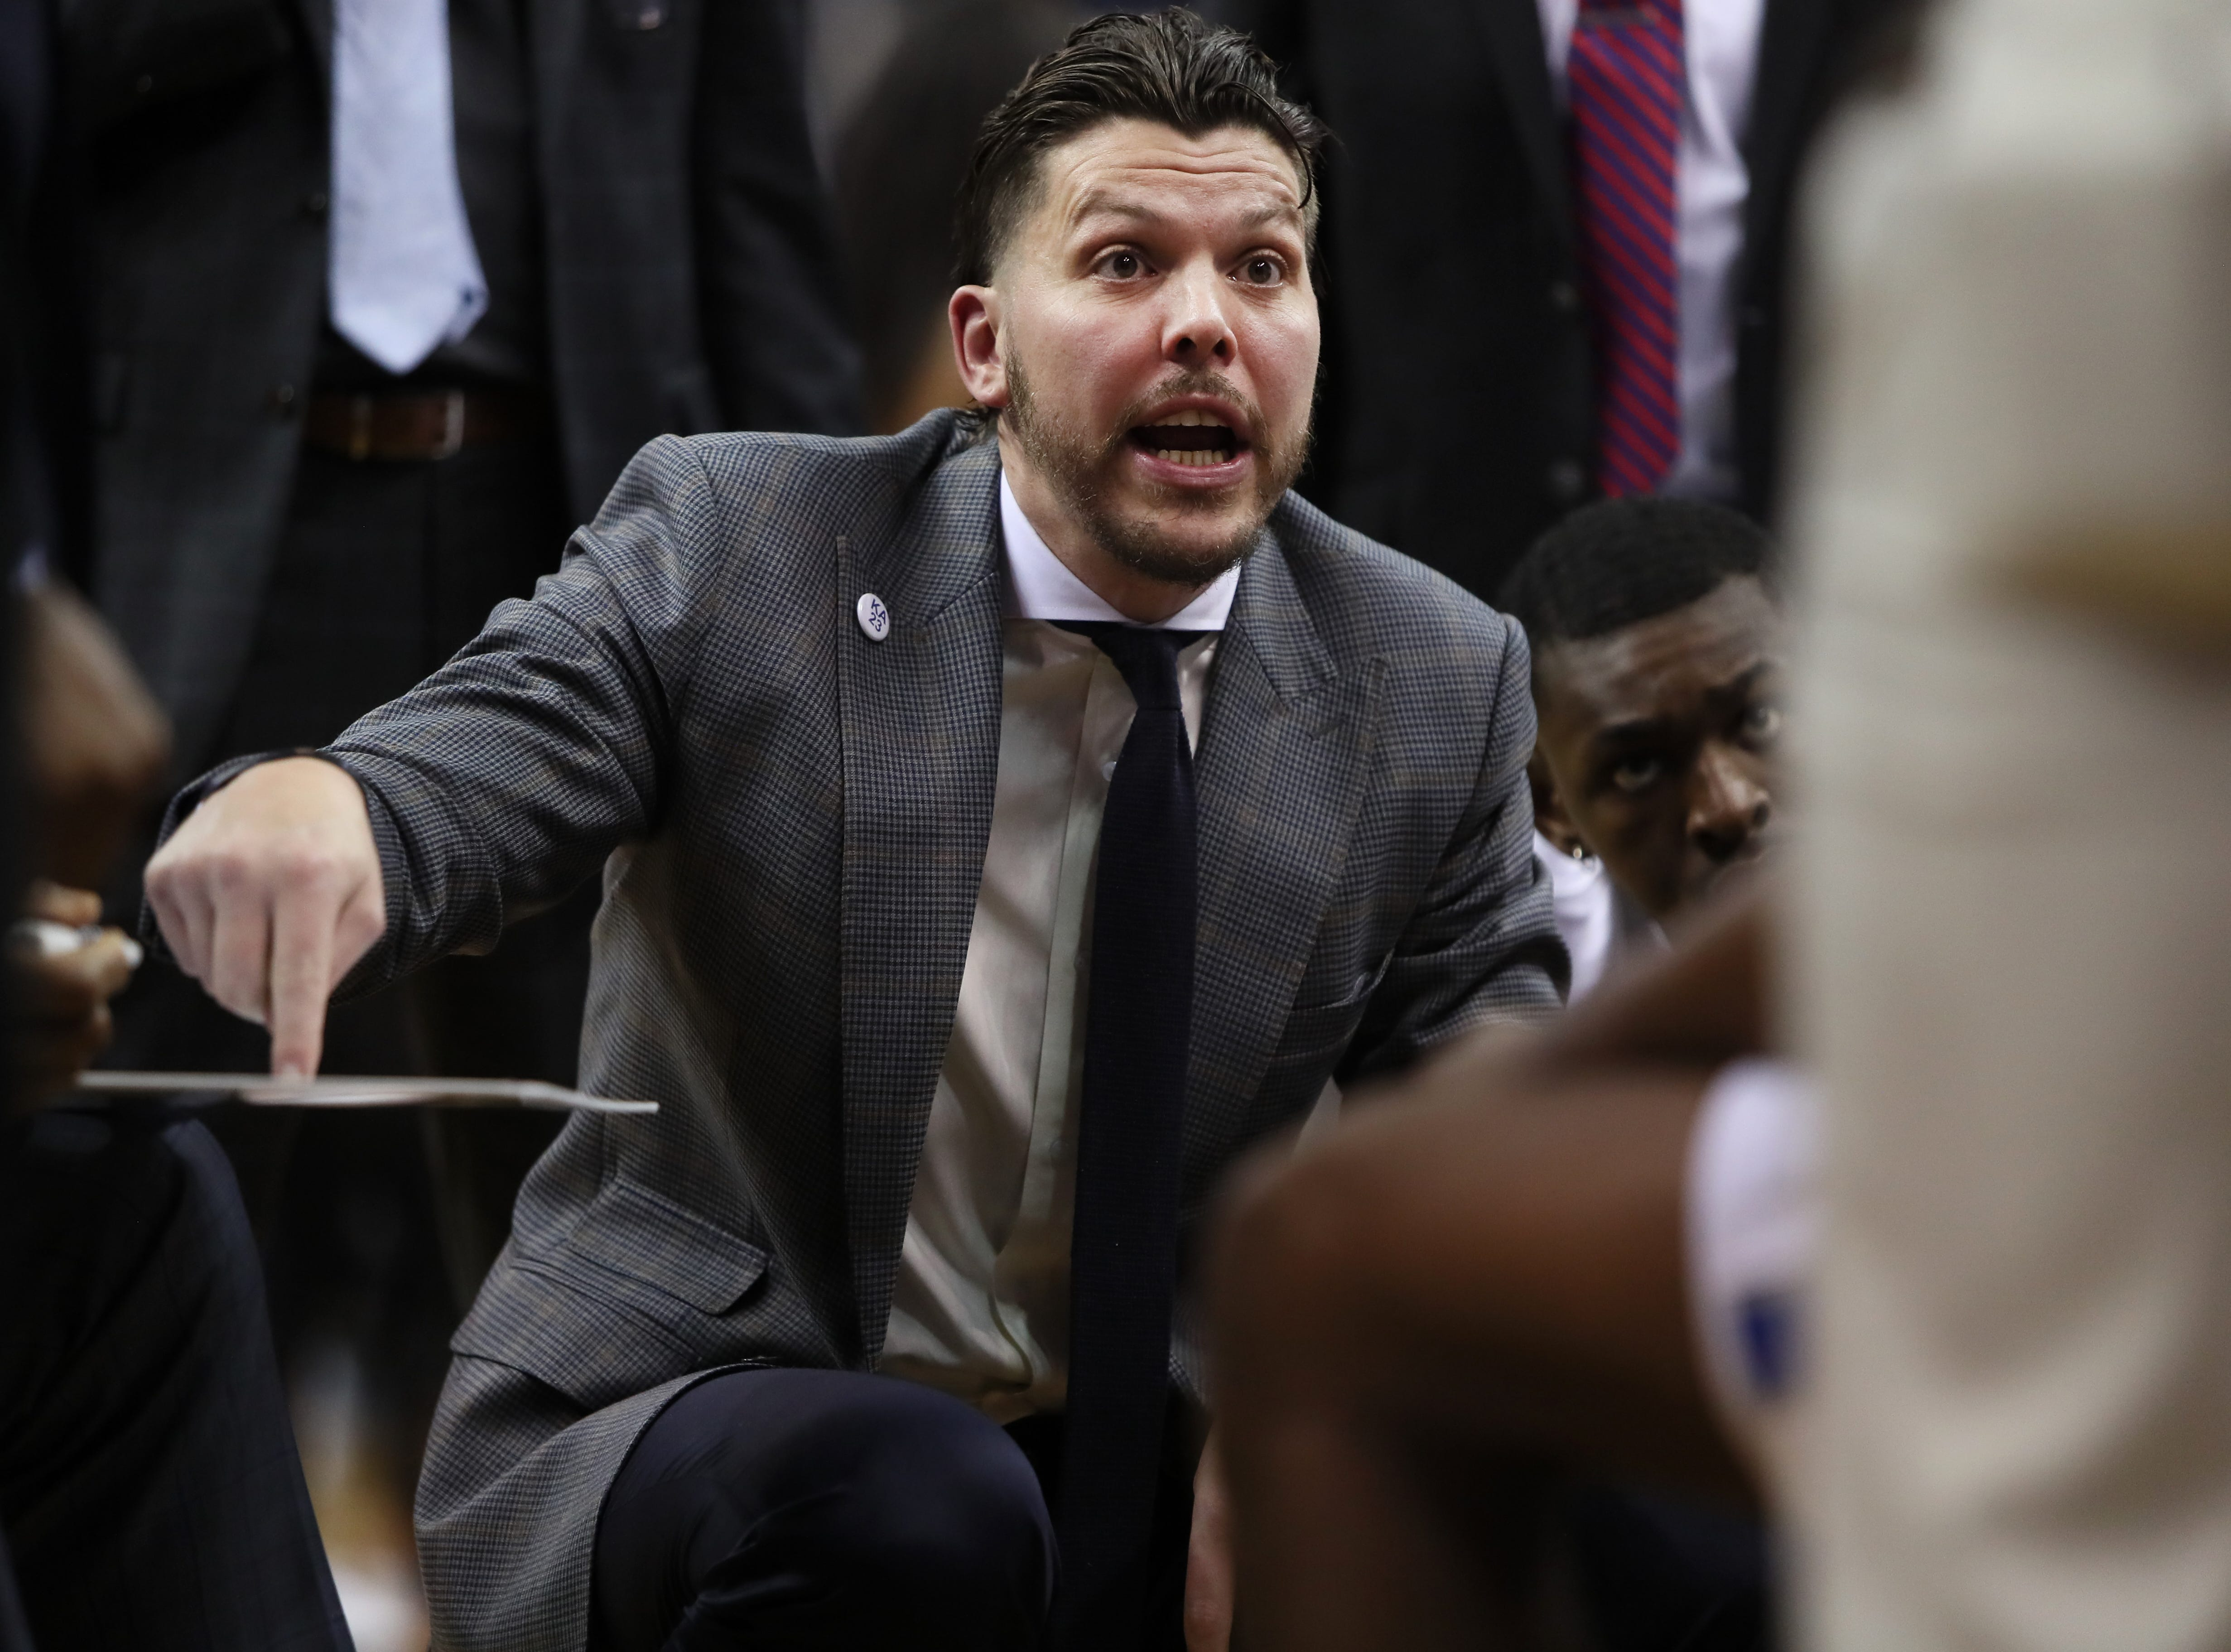 Memphis Tigers Assistant Coach Mike Miller talks to his team during a timeout in their game against the Wichita State Shockers at the FedExForum on Thursday, Jan. 3, 2019.